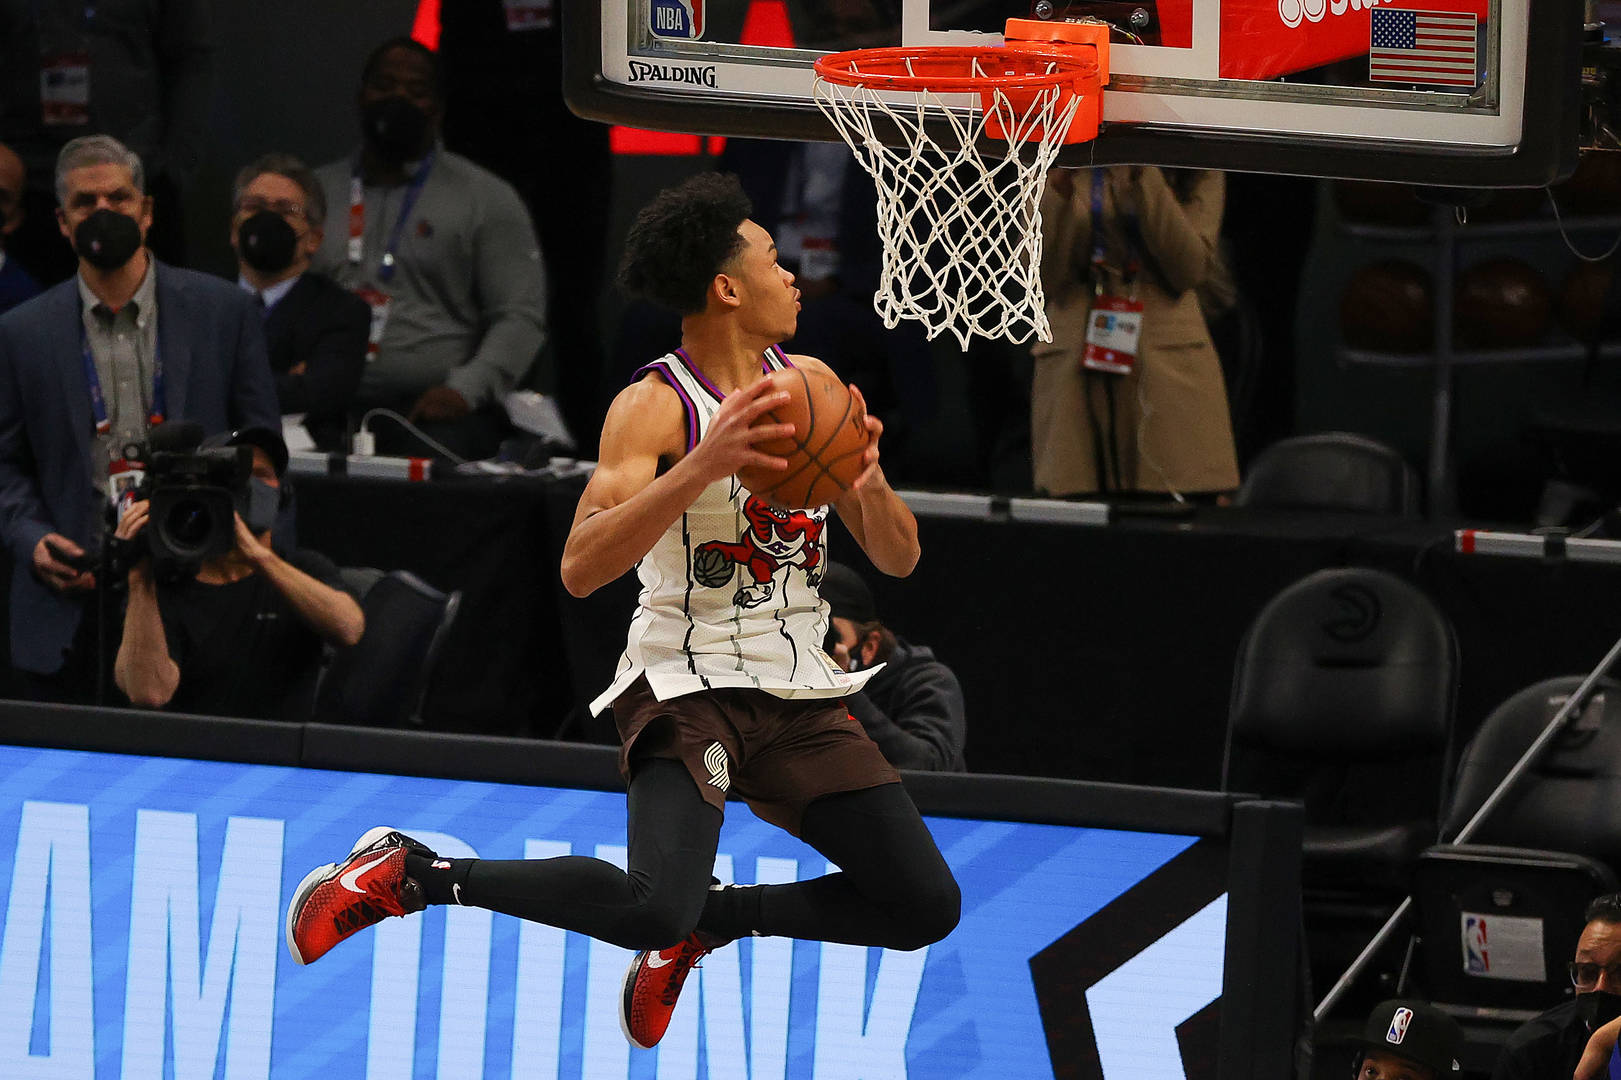 Anfernee Simons, Dunk Contest